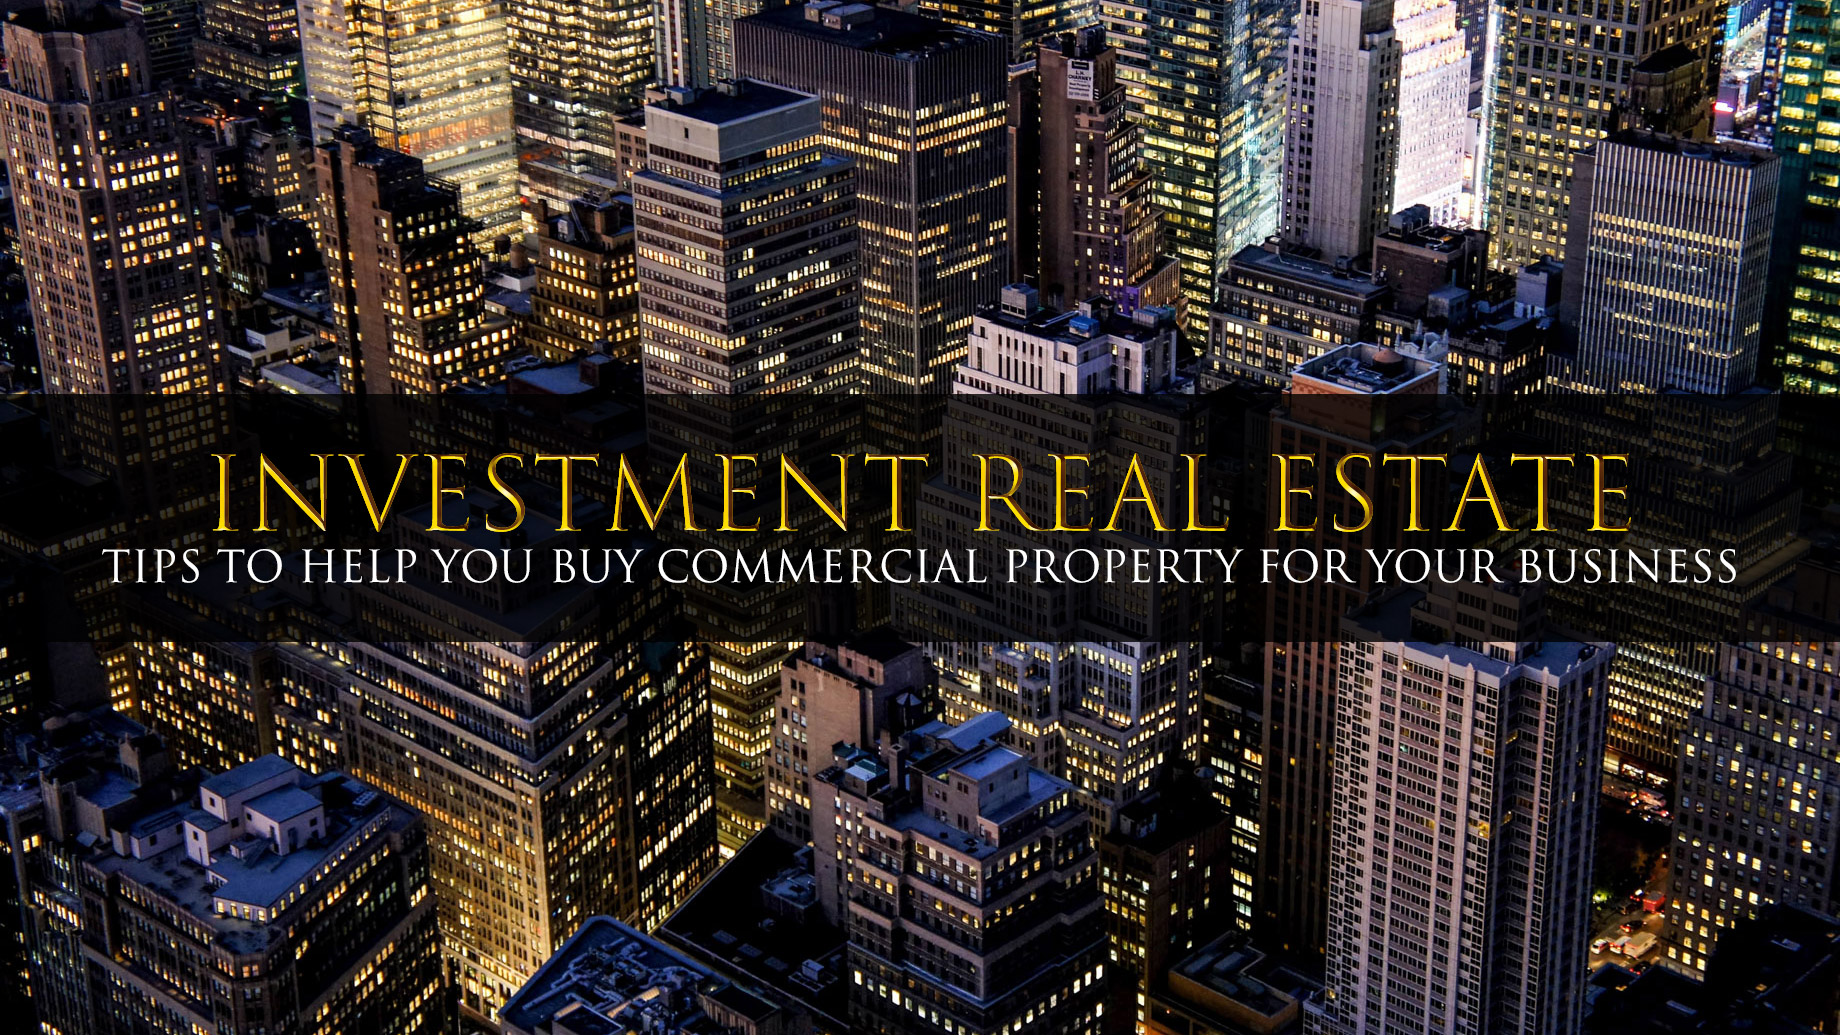 Investment Real Estate - Tips to Help You Buy Commercial Property For Your Business